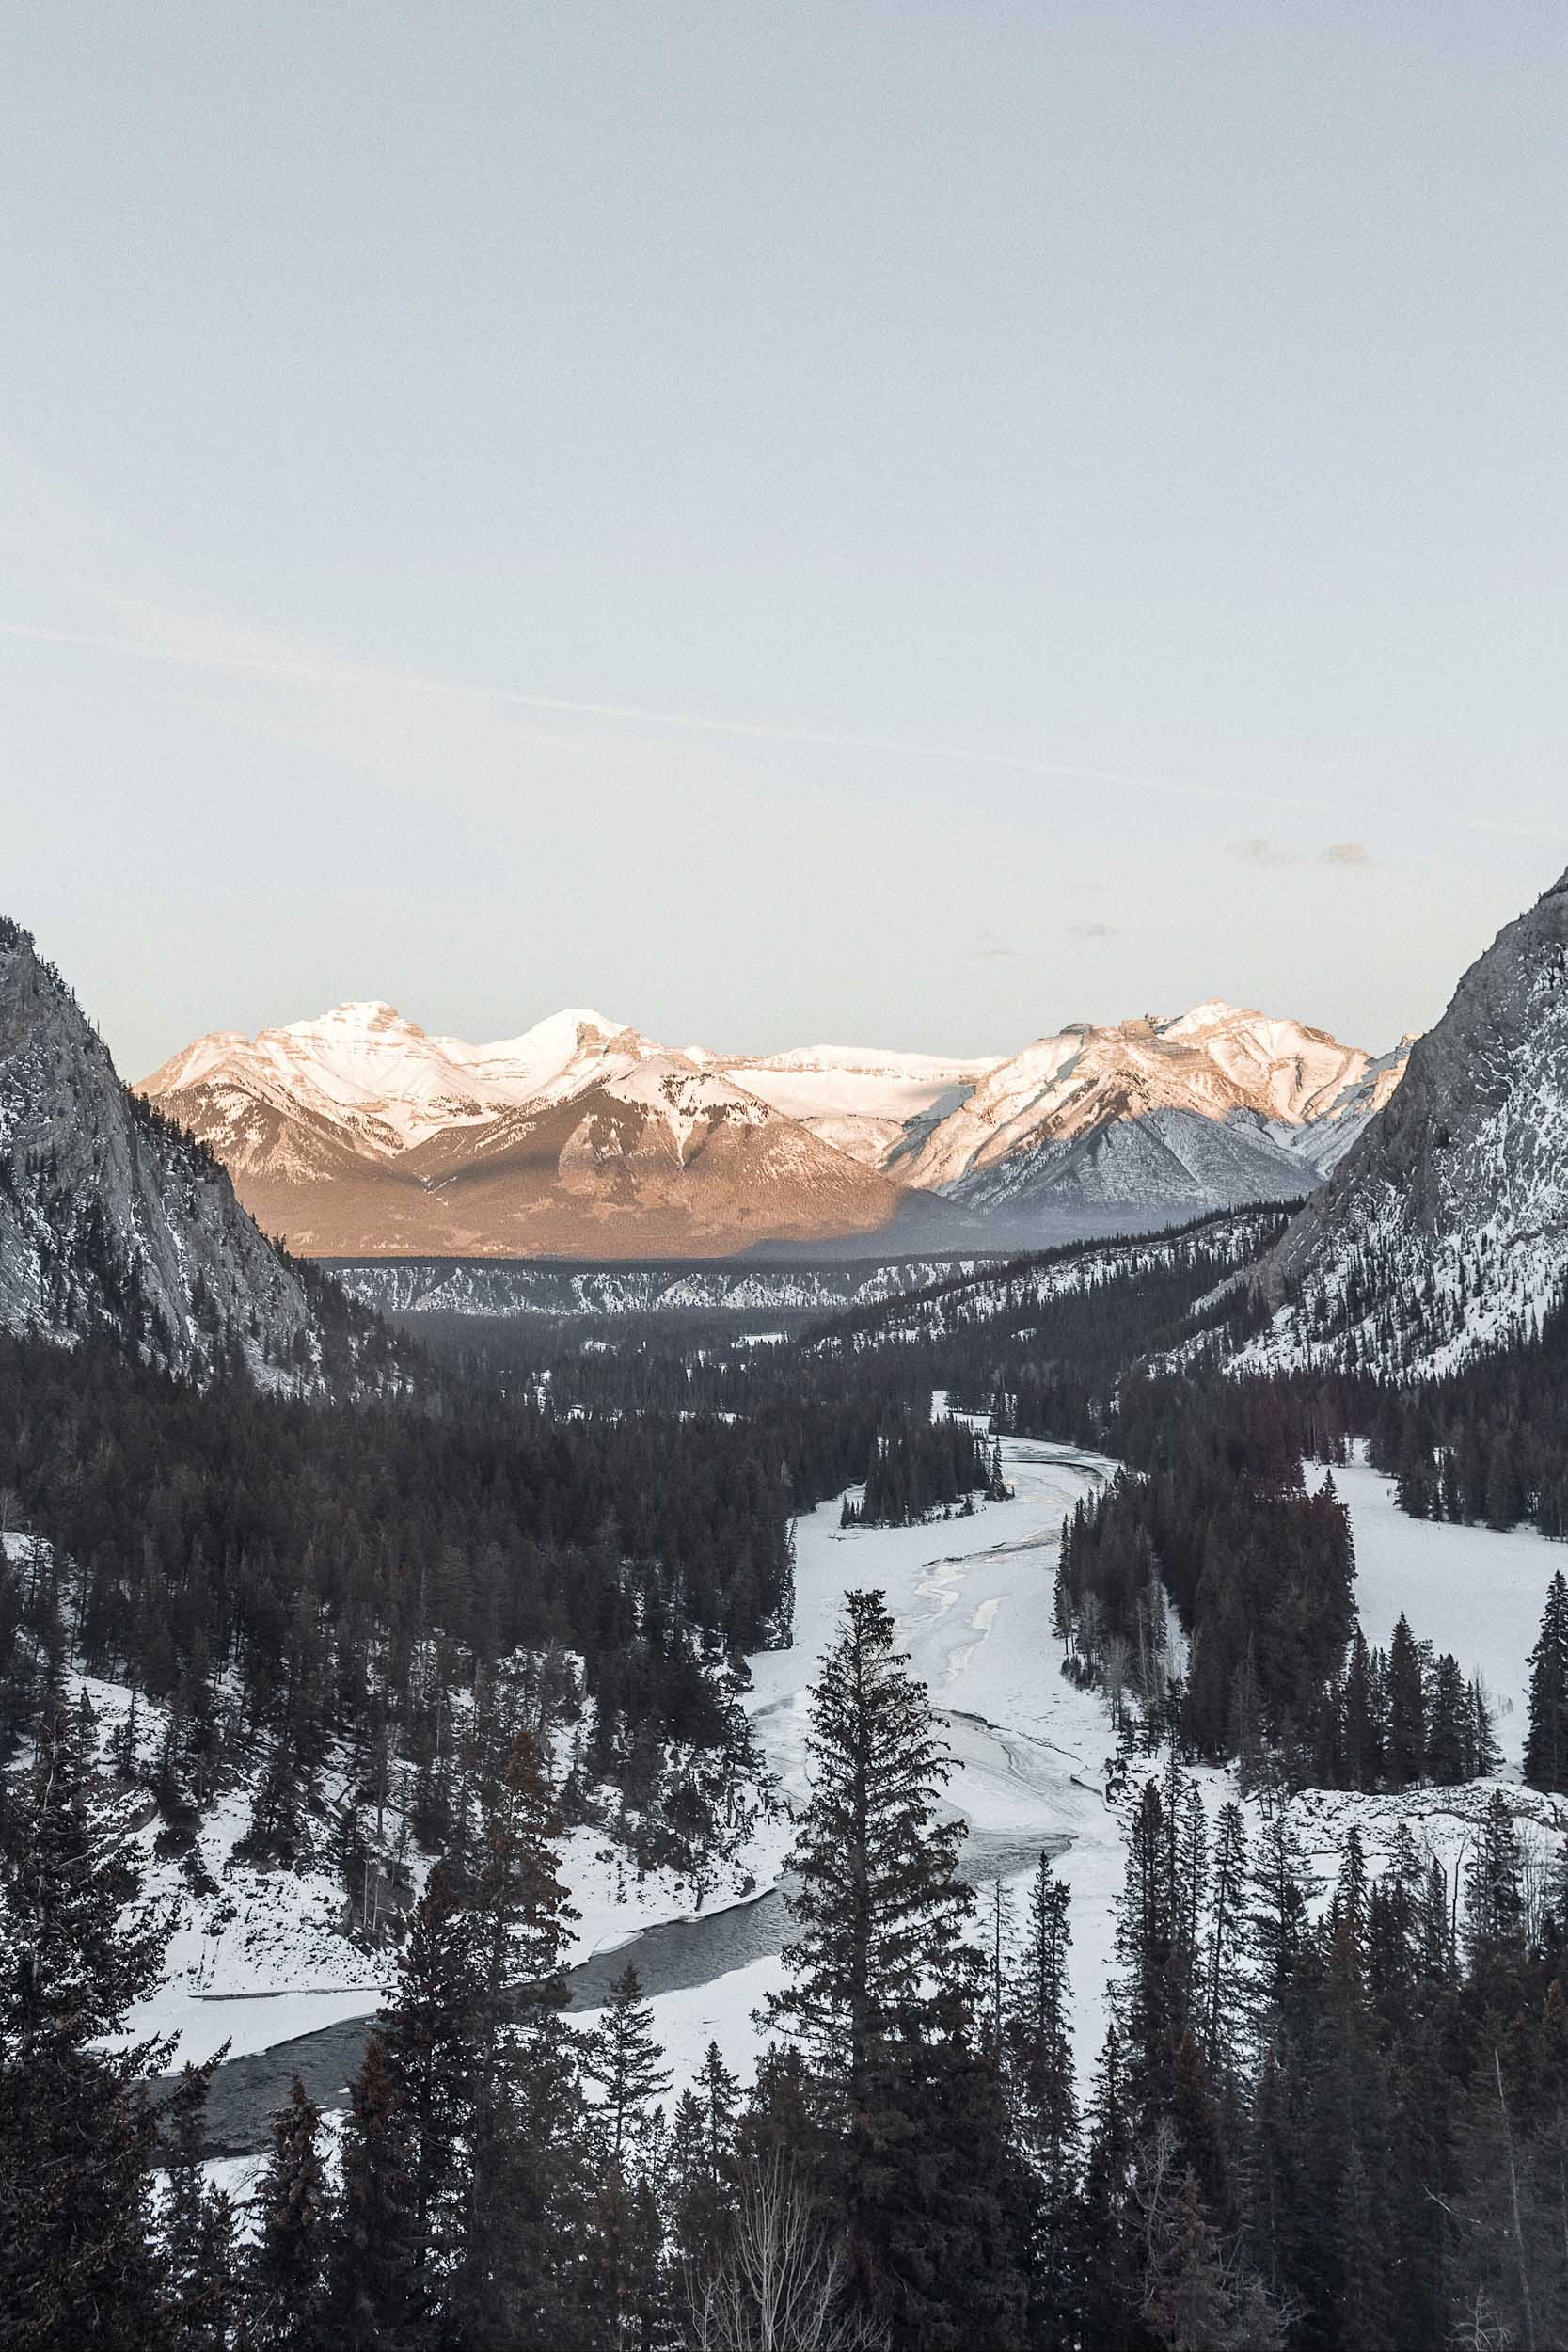 ckanani-banff-winter-a-guide-to-visiting-60.jpg